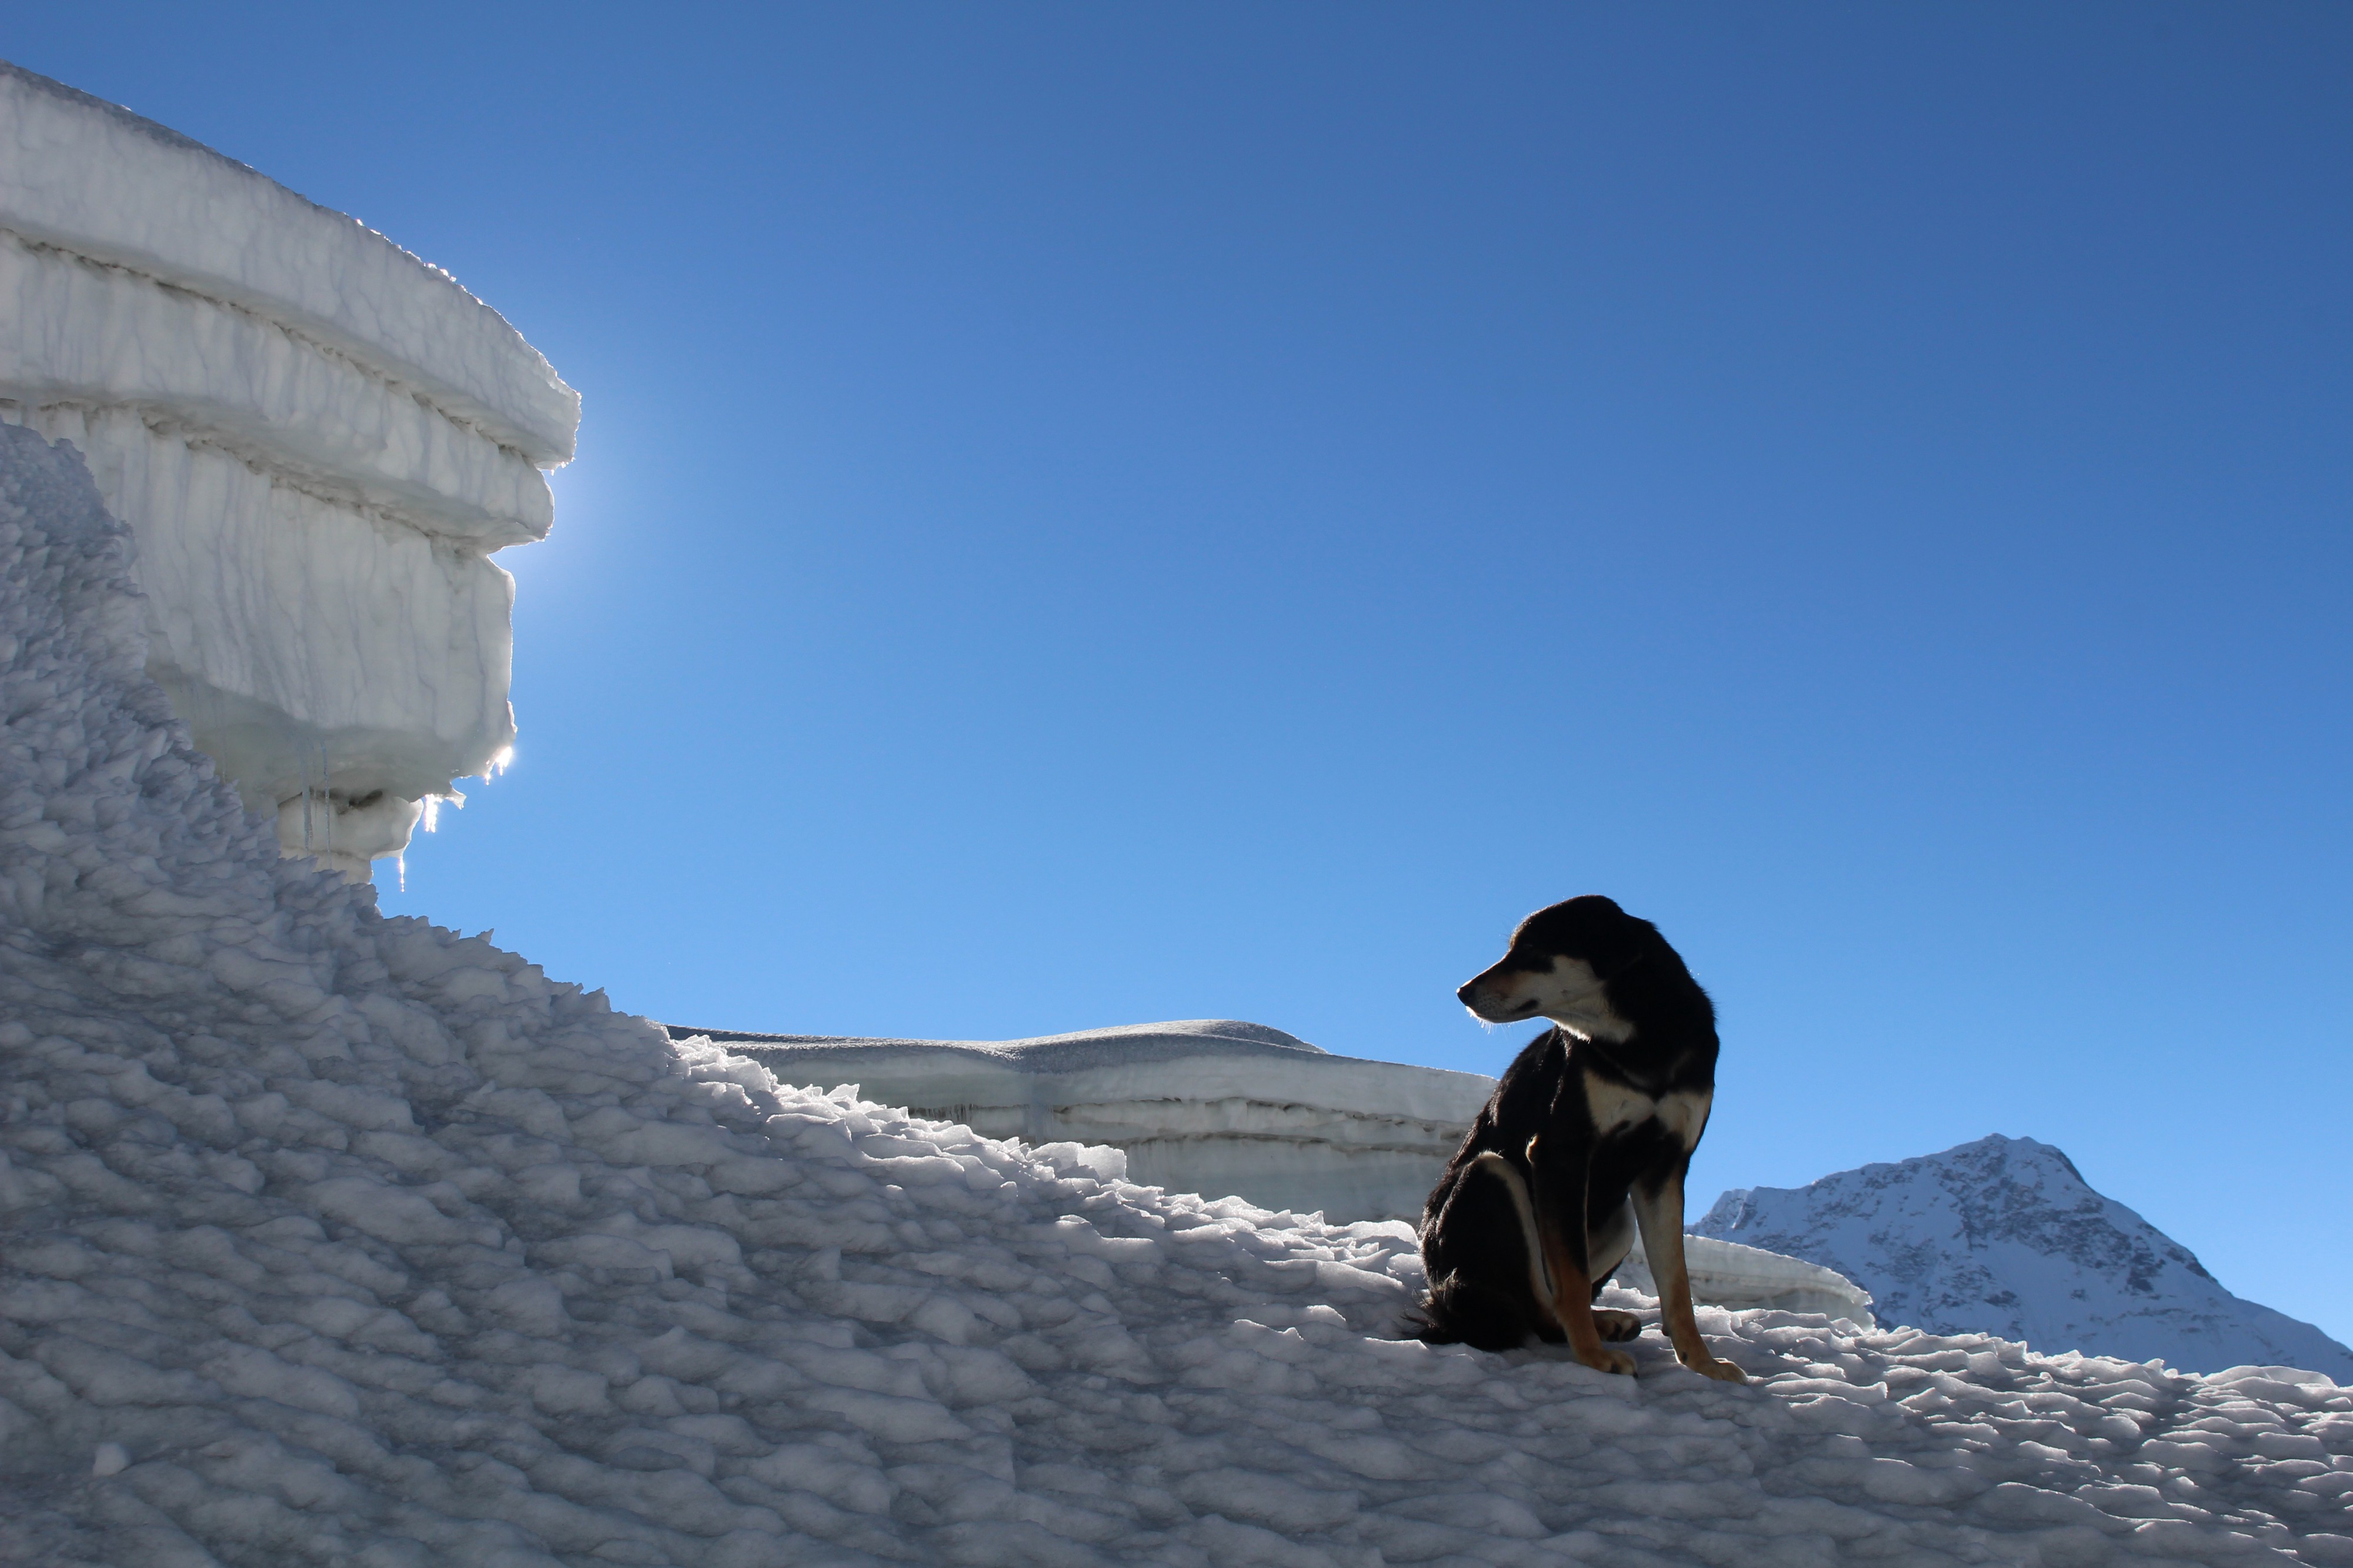 Stray Dog Climbs 23,000' Mountain - Noteworthy - The Journal